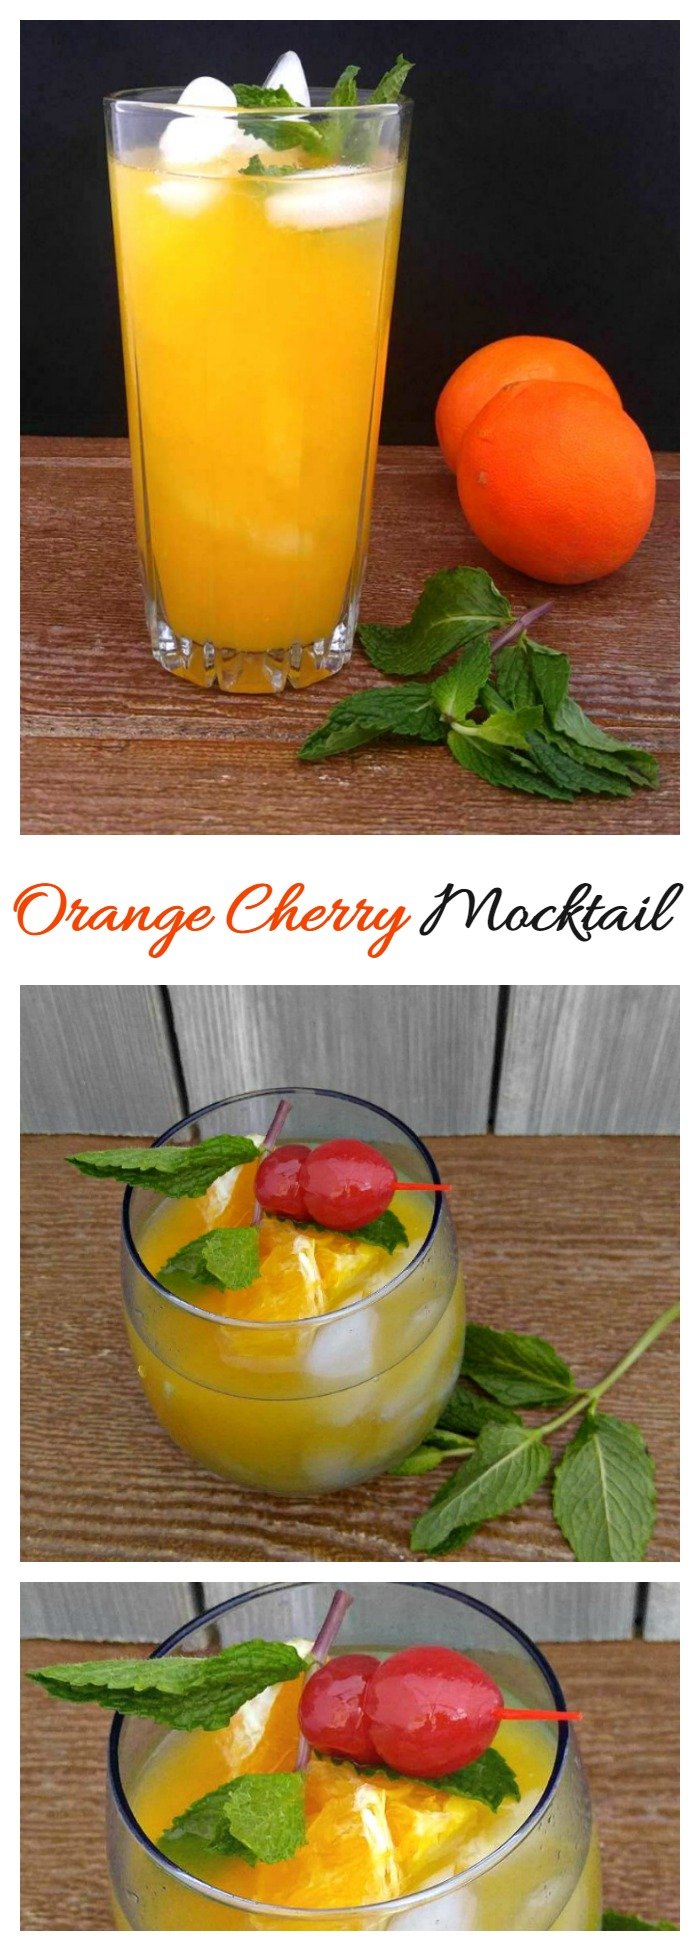 This Orange Cherry Mocktail is the prefect choice for those times when you want a party feel but don't want the alcohol.